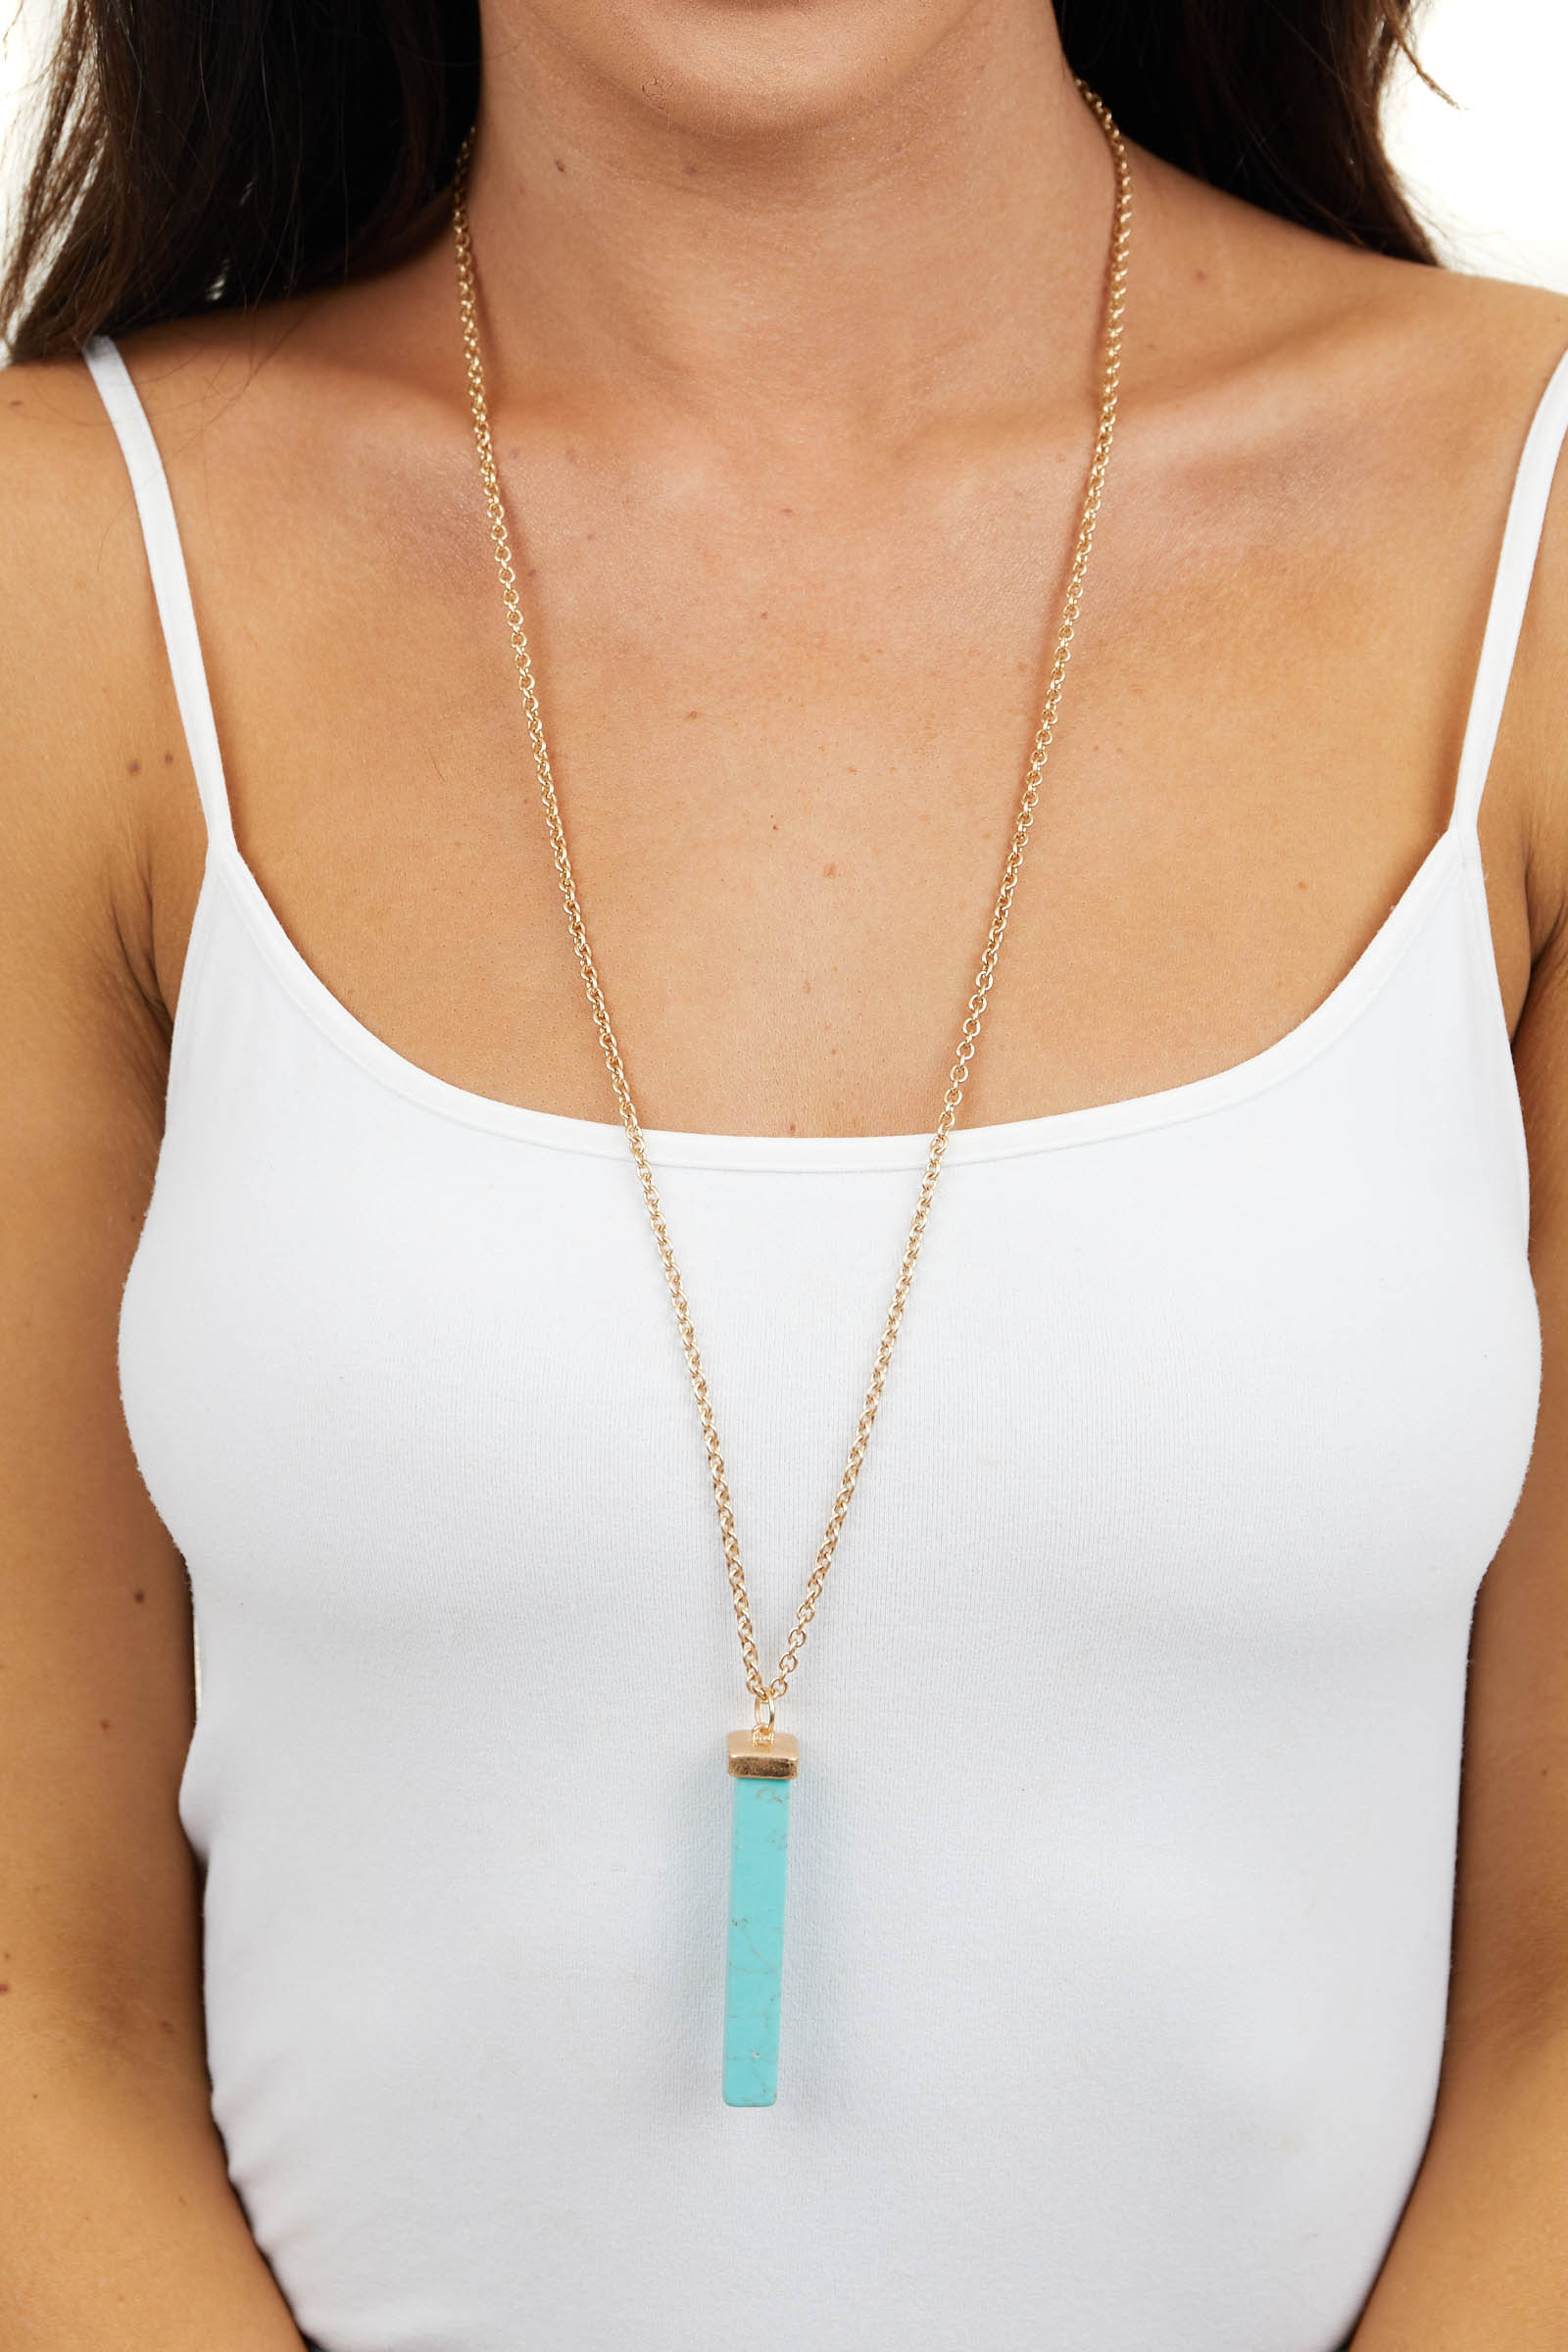 Gold Long Necklace with Turquoise Stone Bar Pendant